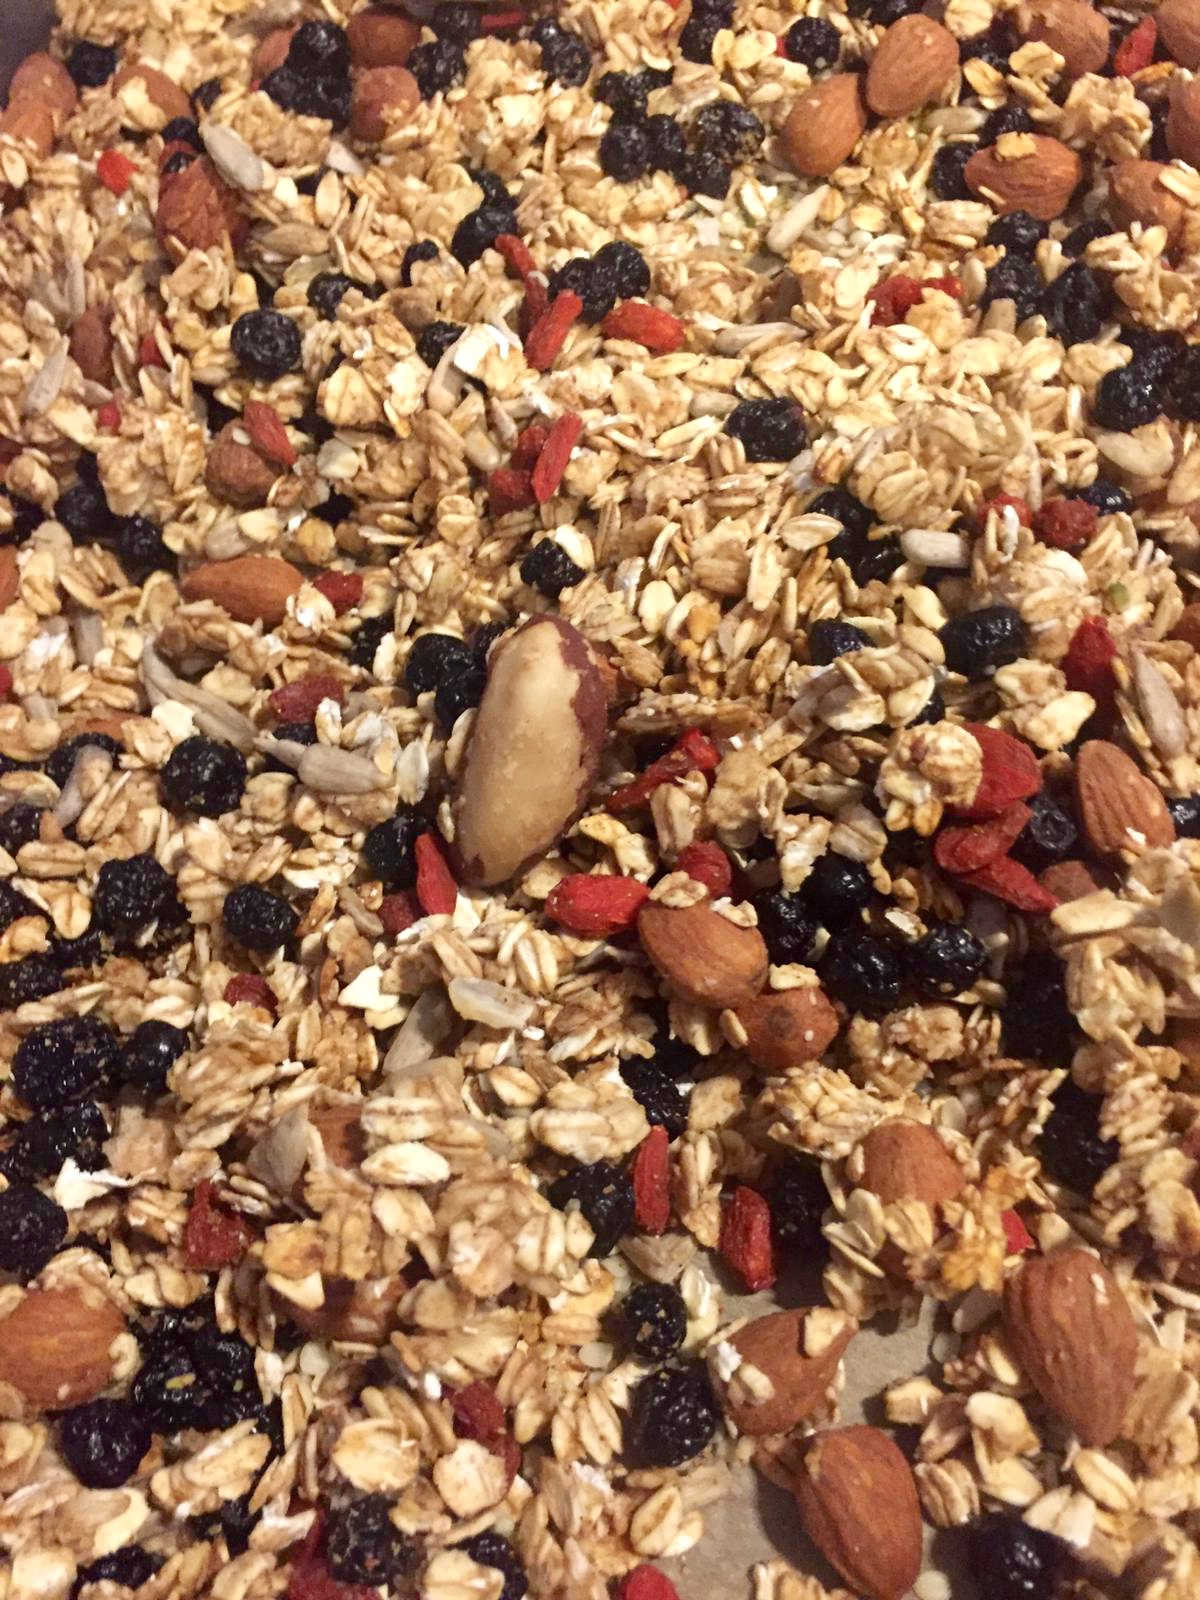 Tray of homemade granola